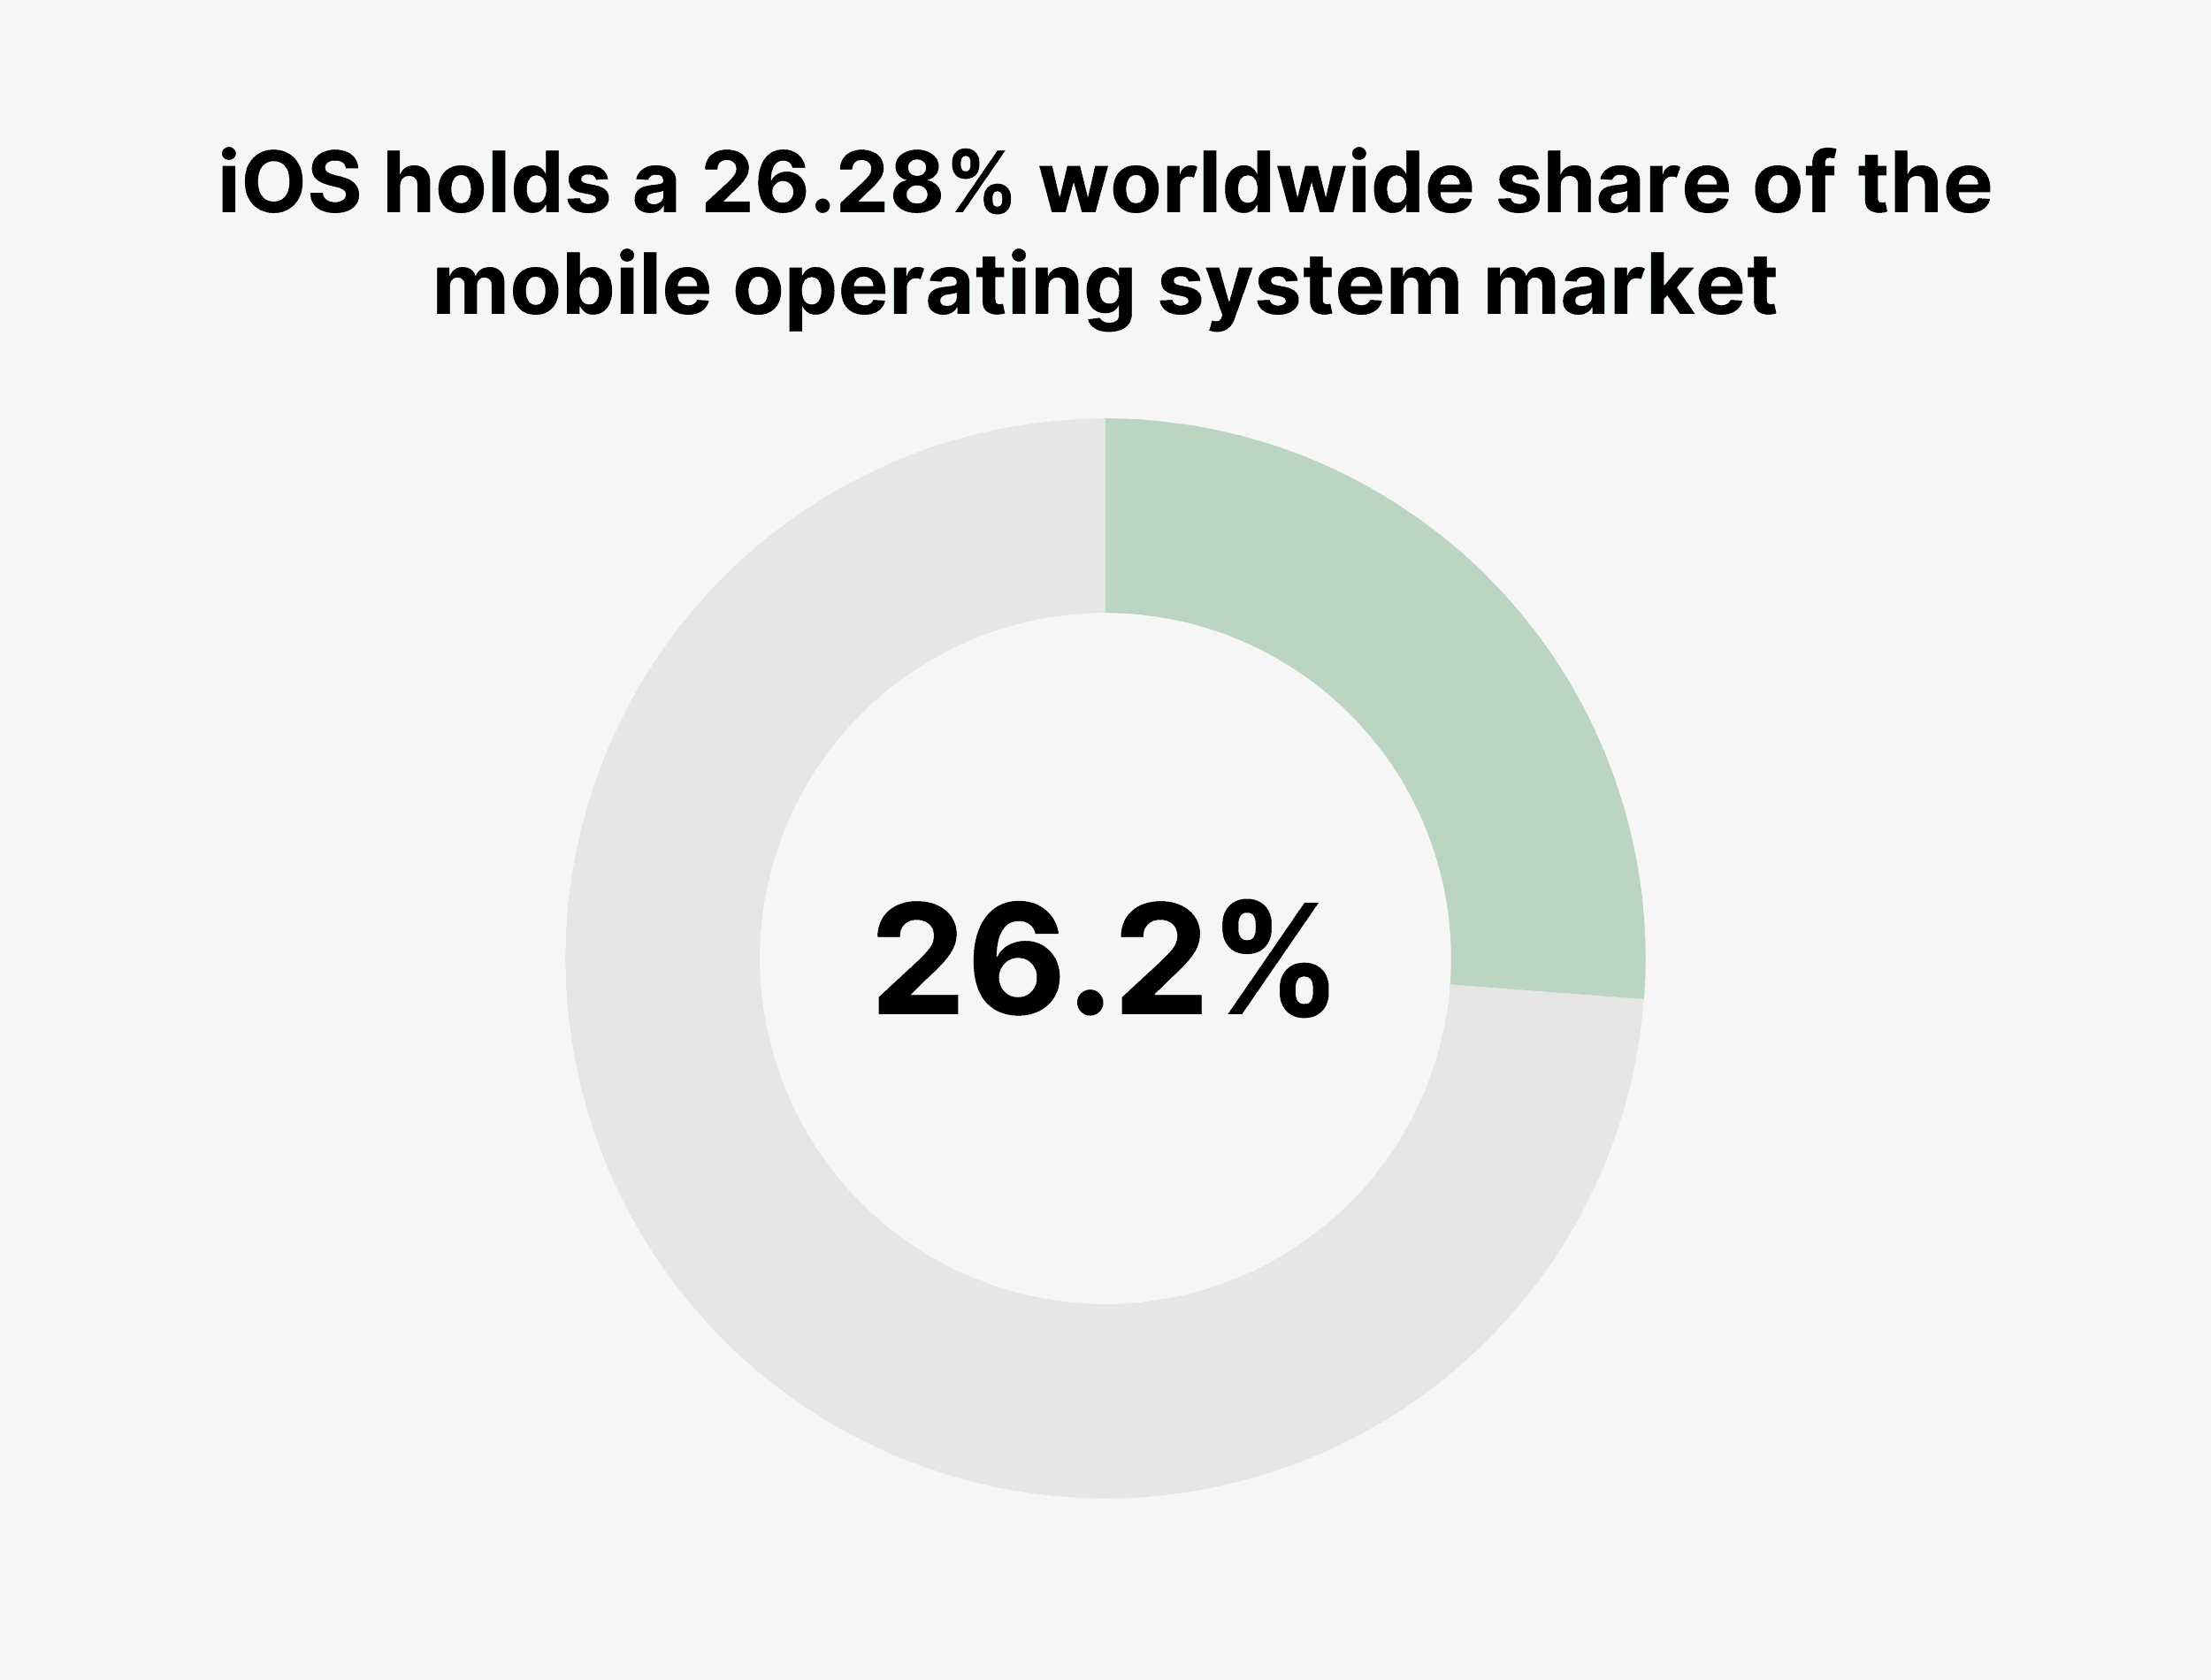 iOS holds a 26.28% worldwide share of the mobile operating system market